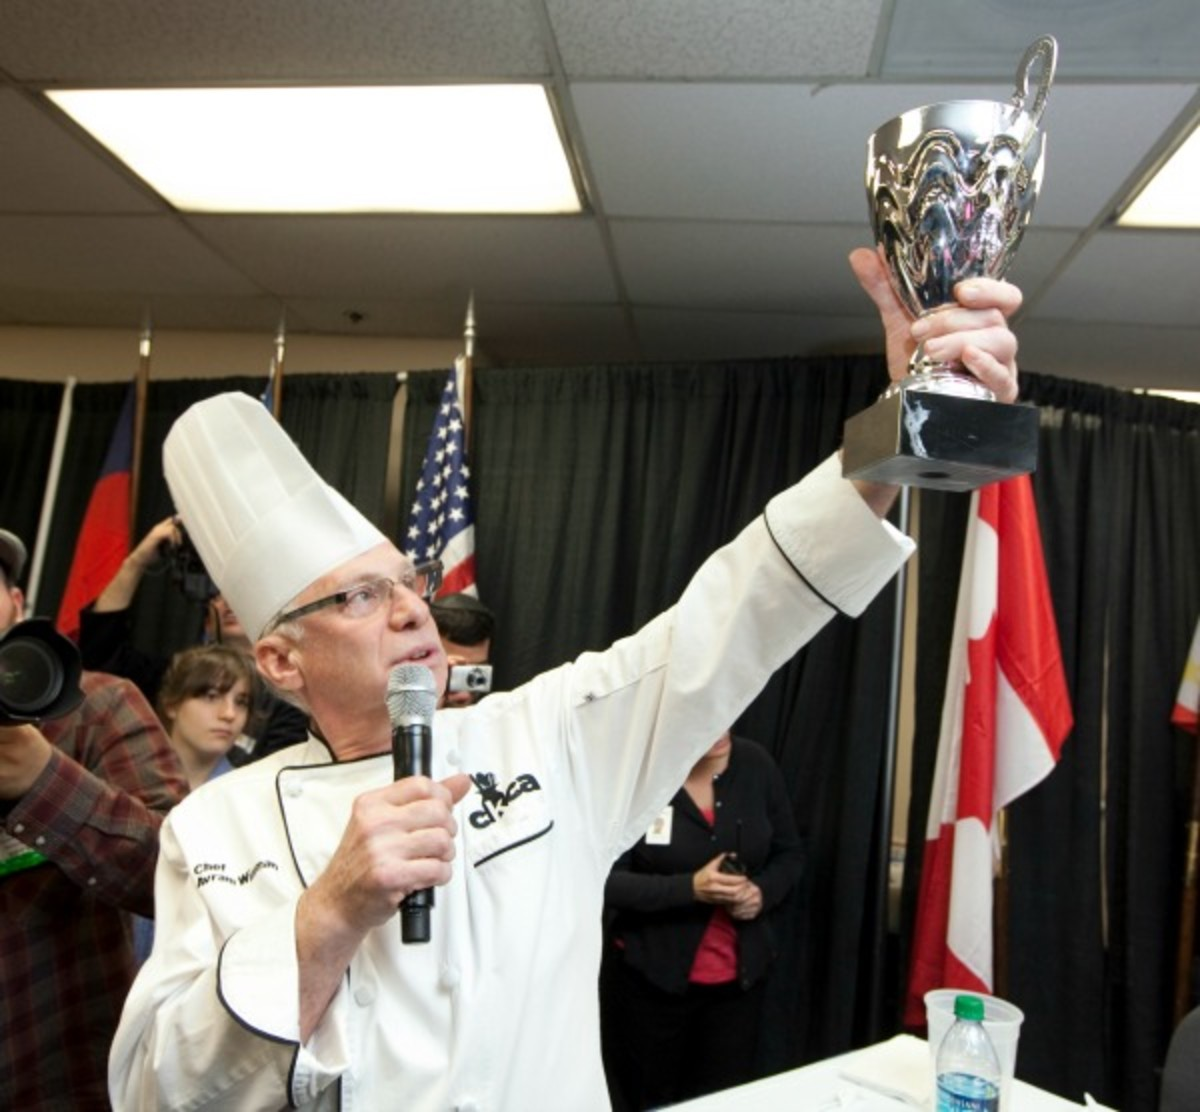 Chef Wiseman holding Trophy